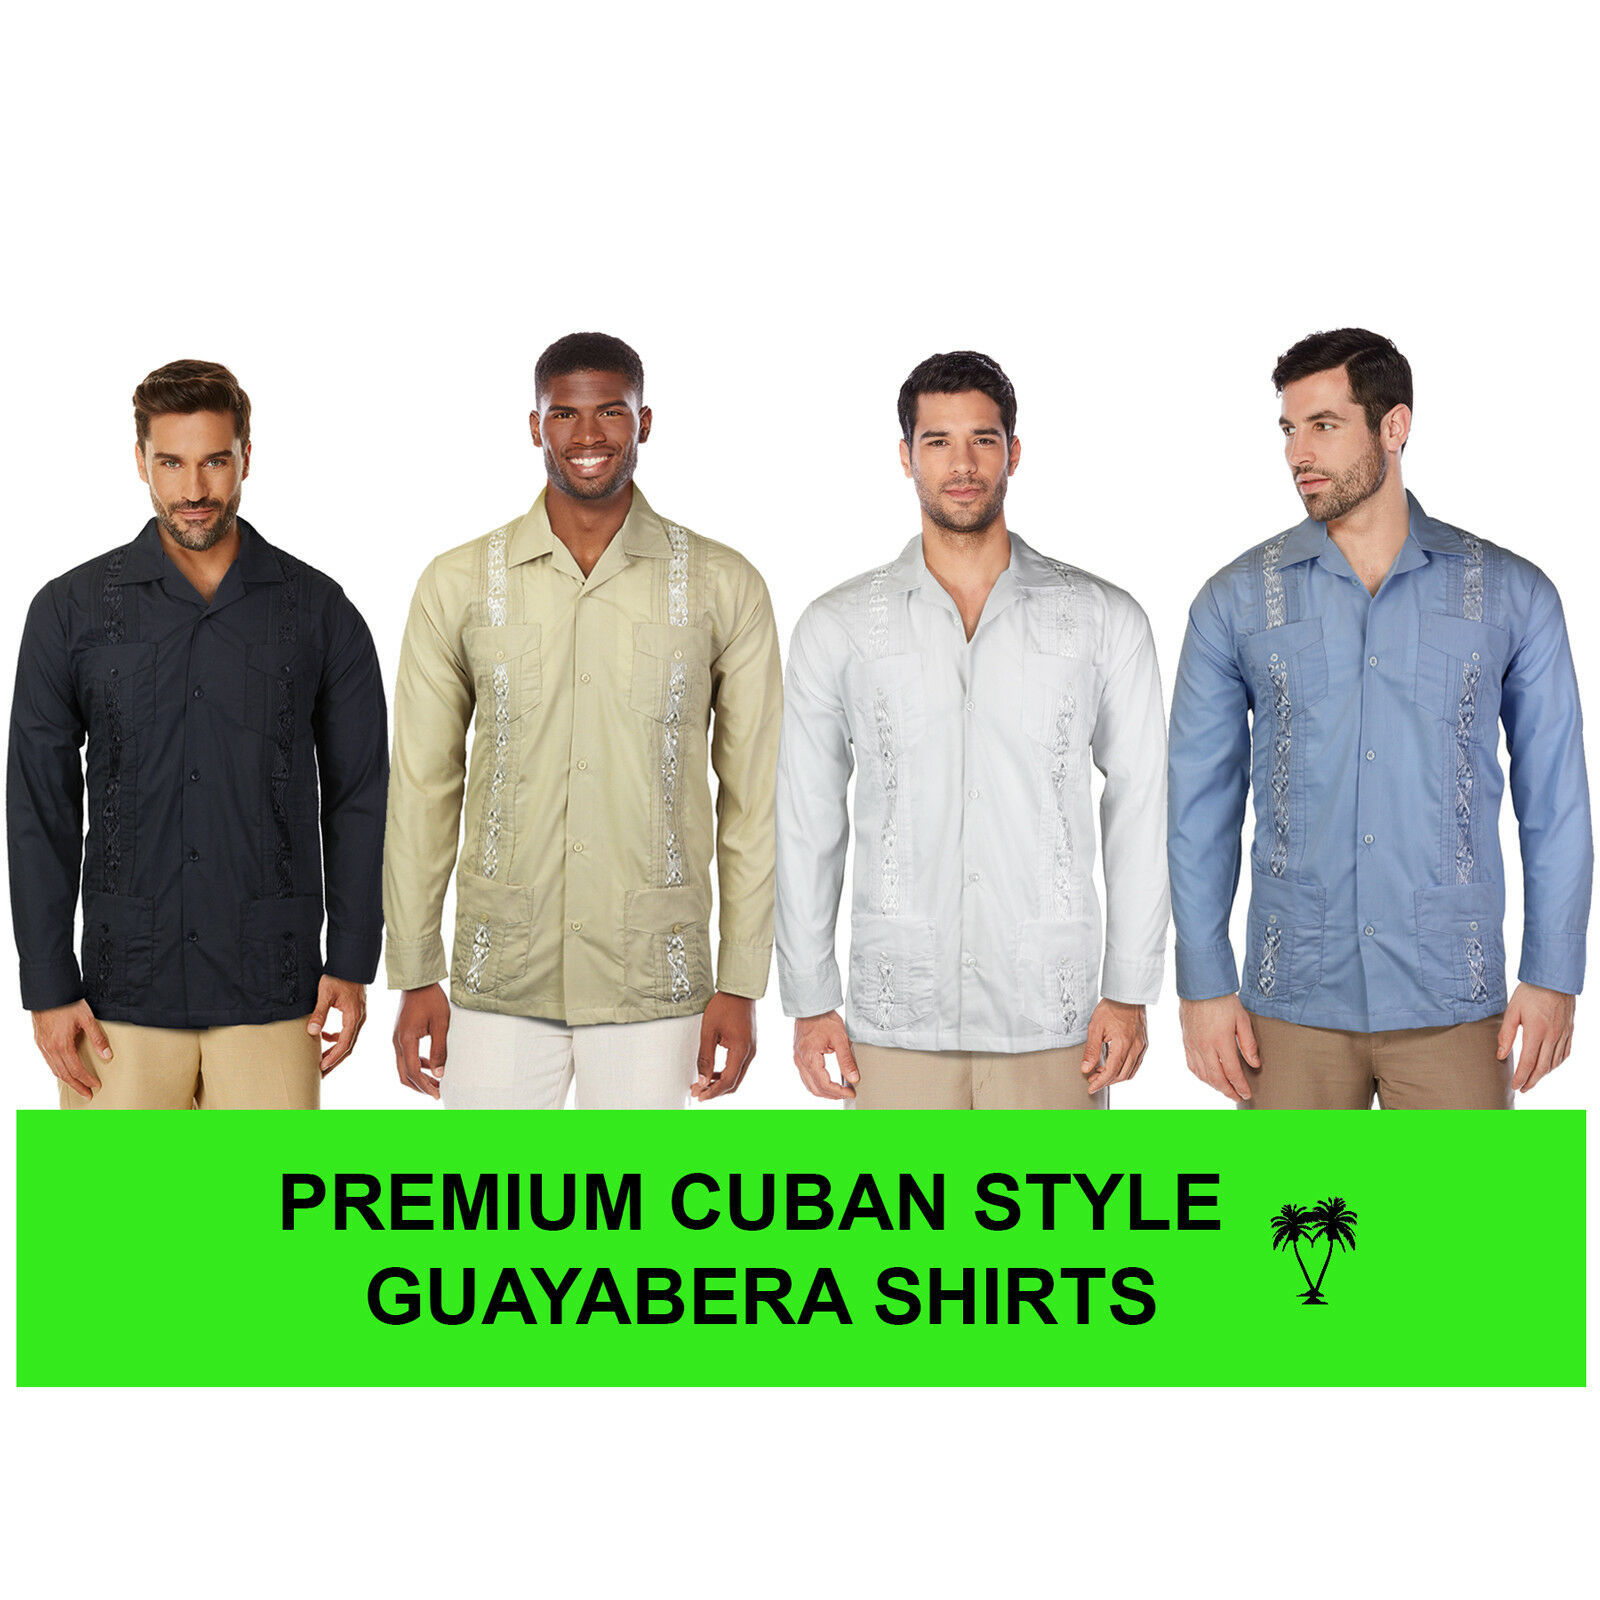 Men's Beach Guayabera Casual Cuban Wedding Button-Up Long Sleeve Dress Shirt